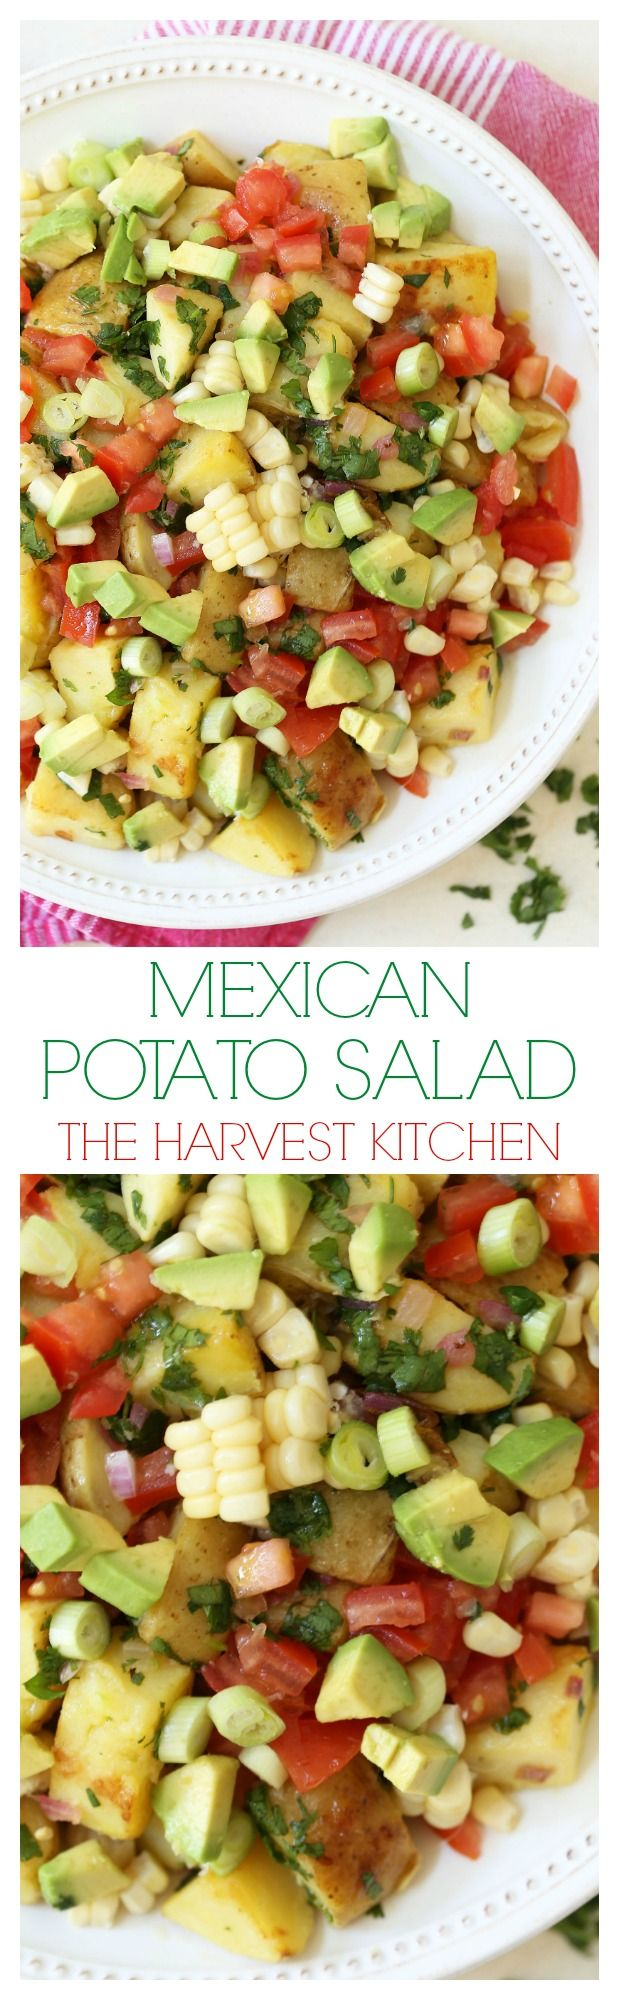 This colorful Mexican Potato Salad is loaded with fresh crunchy corn, tender juicy ripe tomatoes, buttery avocado and perky green onions, then the whole ensemble is perfectly dressed in a cilantro lime vinaigrette. @theharvestkitchen.com